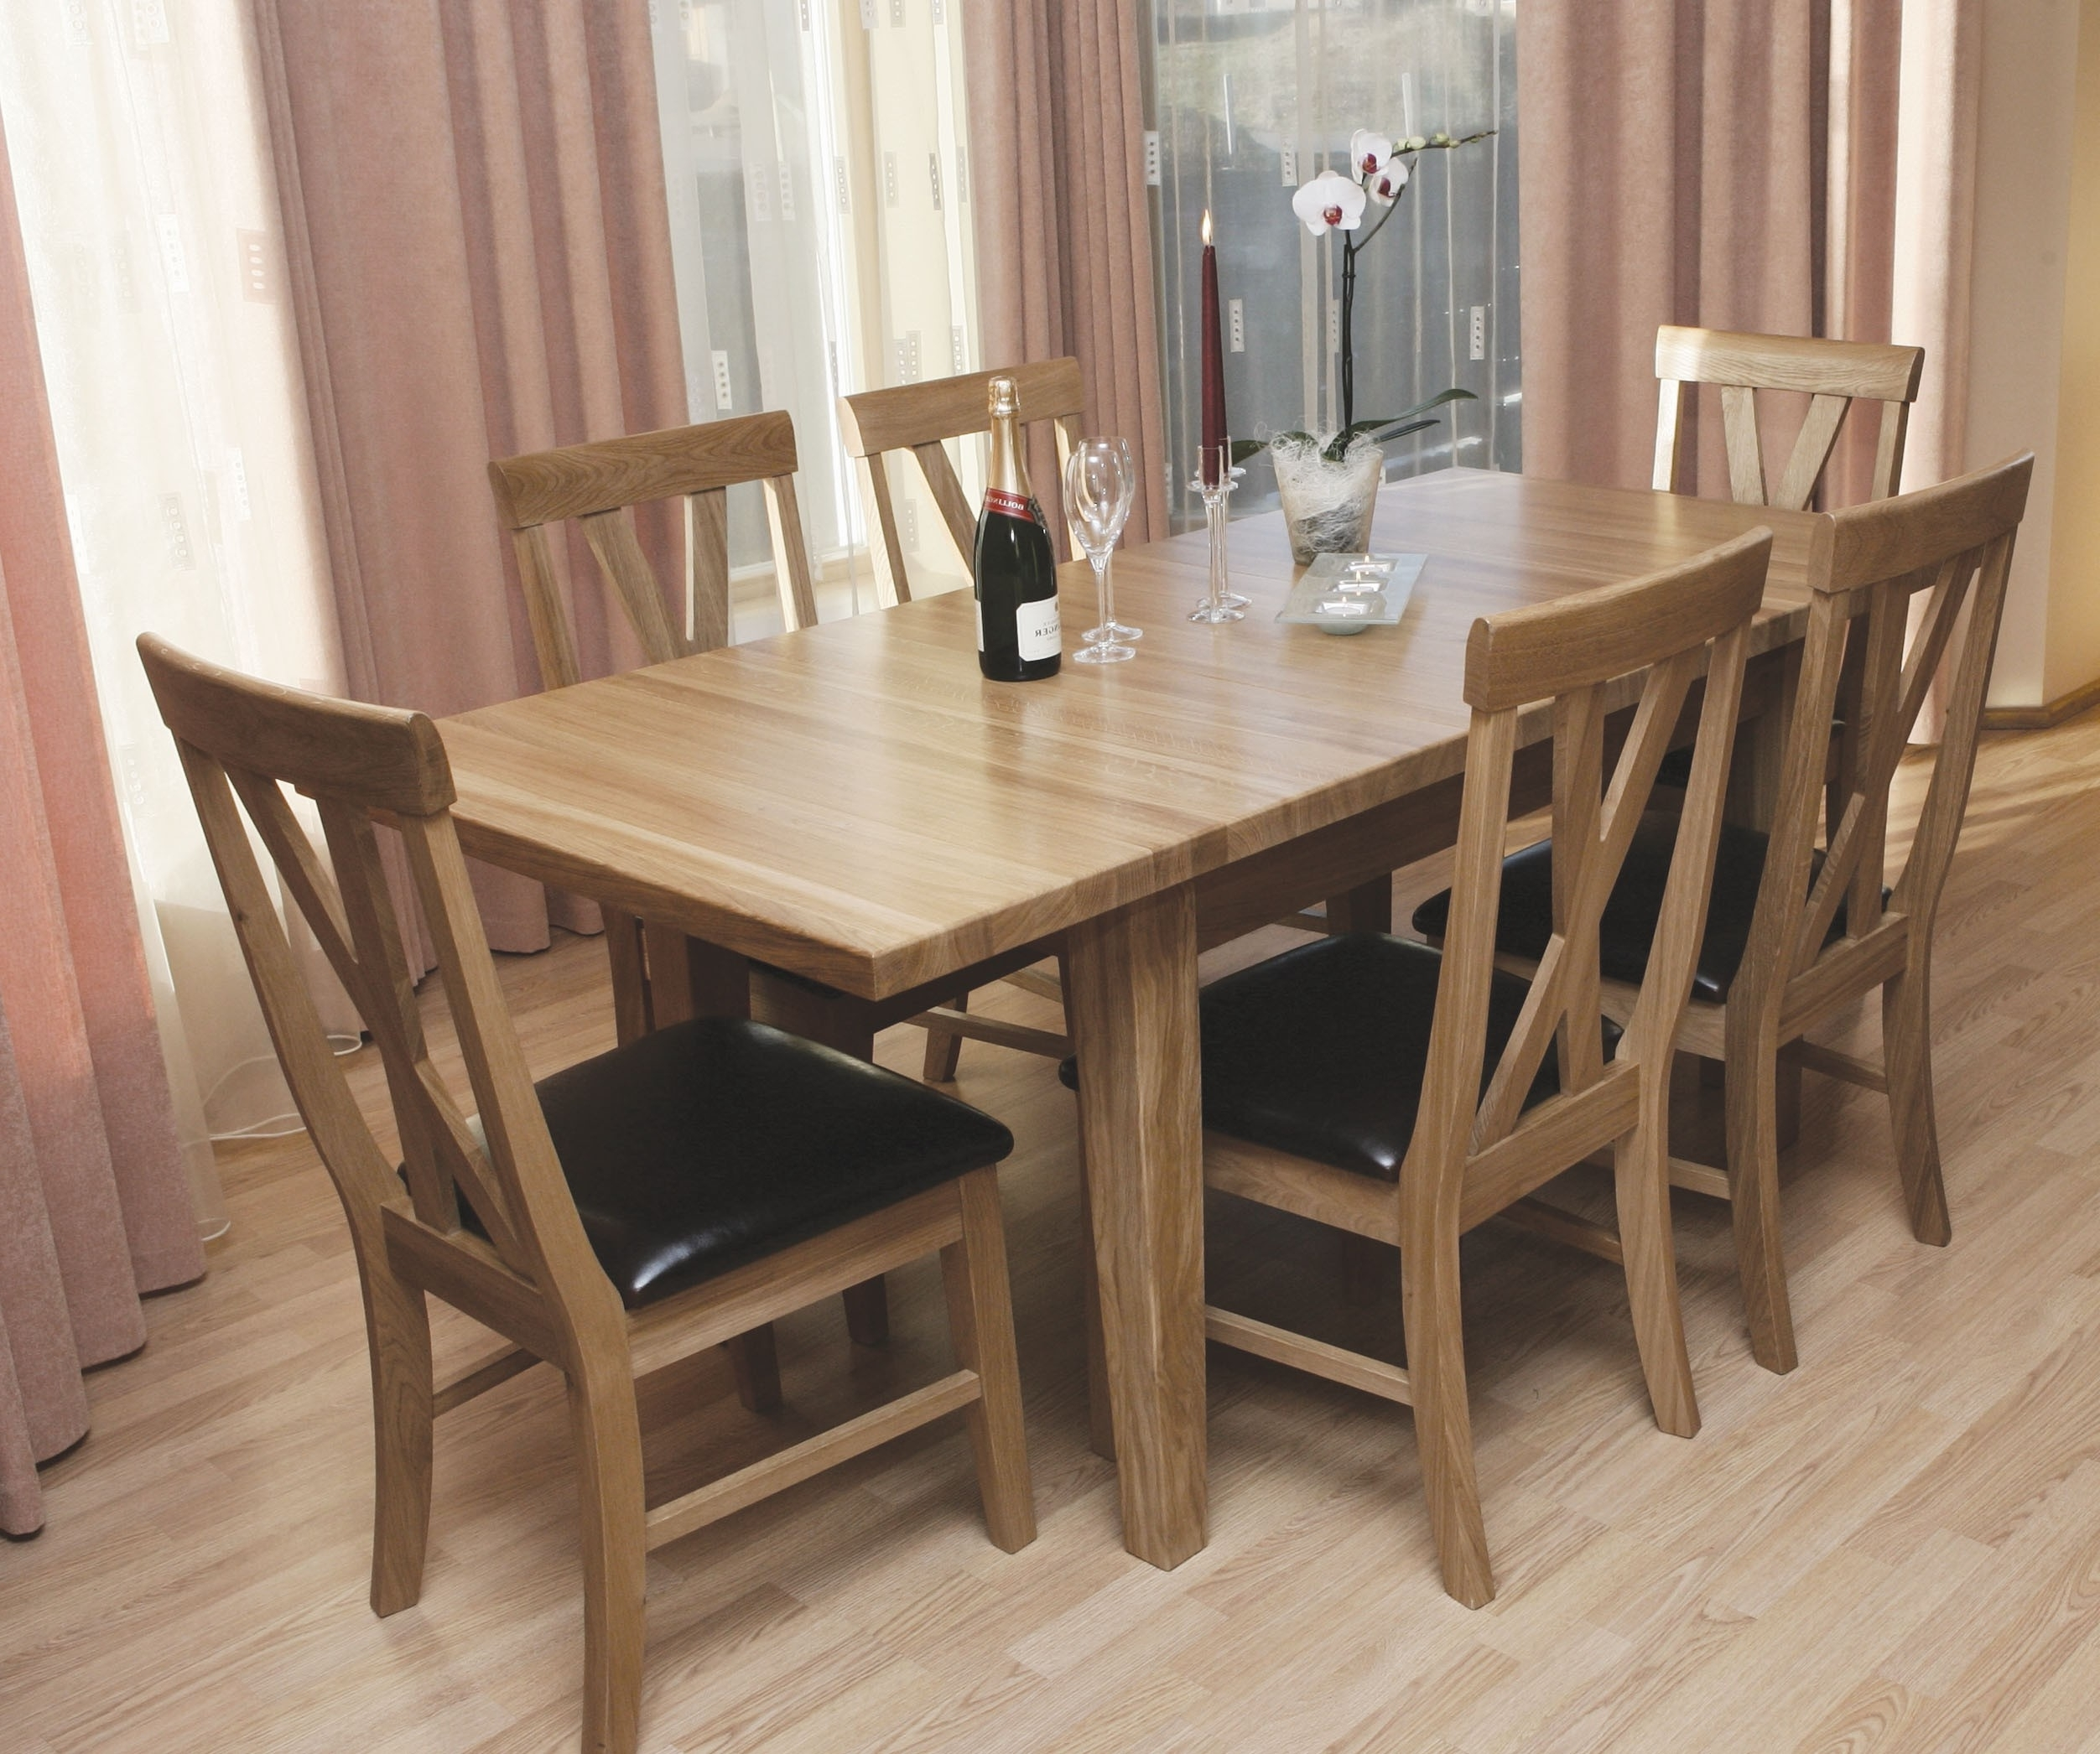 Newest Oak Furniture Dining Sets Throughout Tch Warwick 6 Seat Dining Table & Chairs Set Solid Oak – Furniture (View 4 of 25)